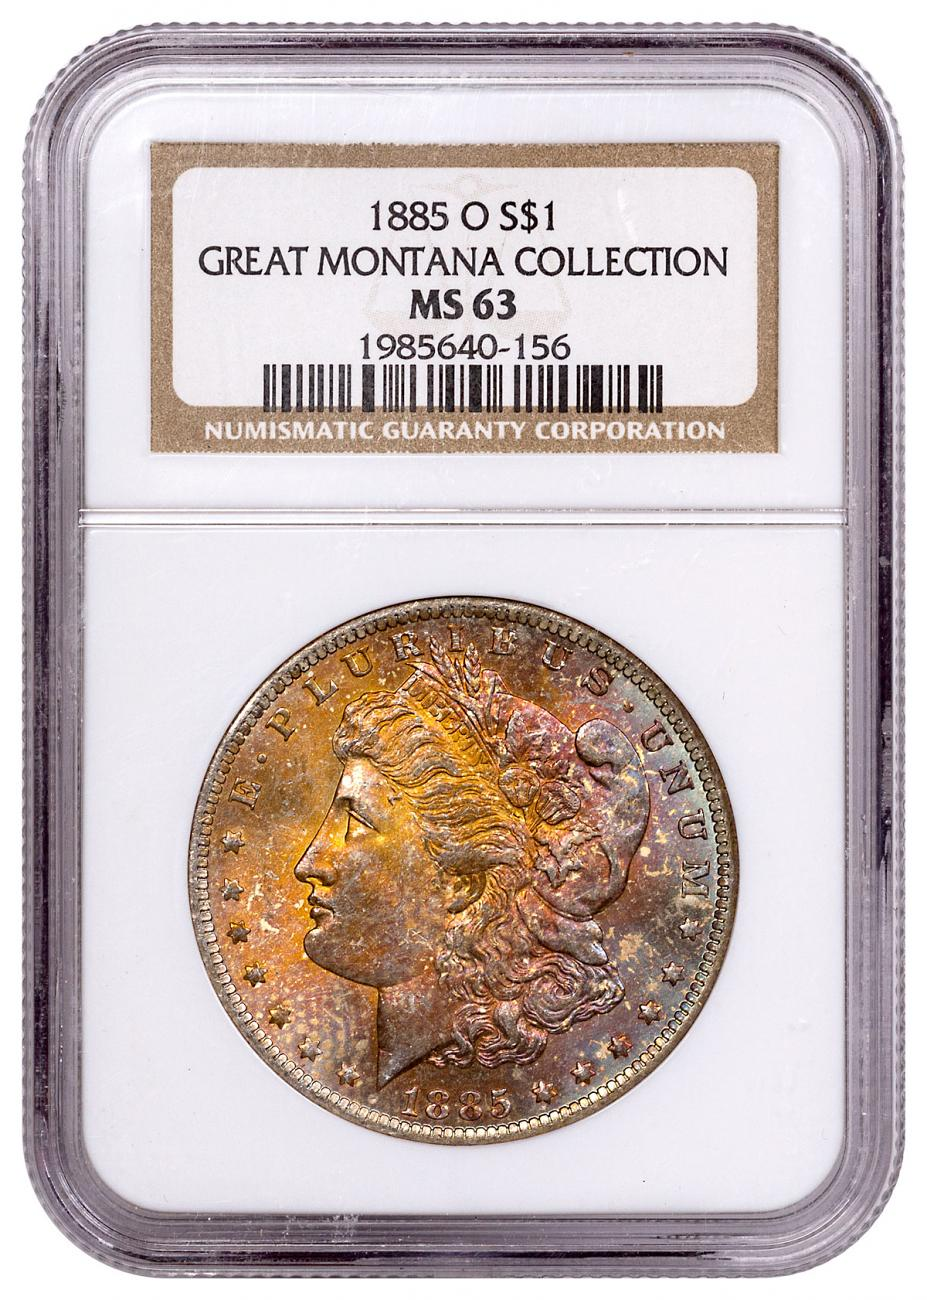 1885-O Morgan Silver Dollar From the Great Montana Collection NGC MS63 Toned CPCR 0156